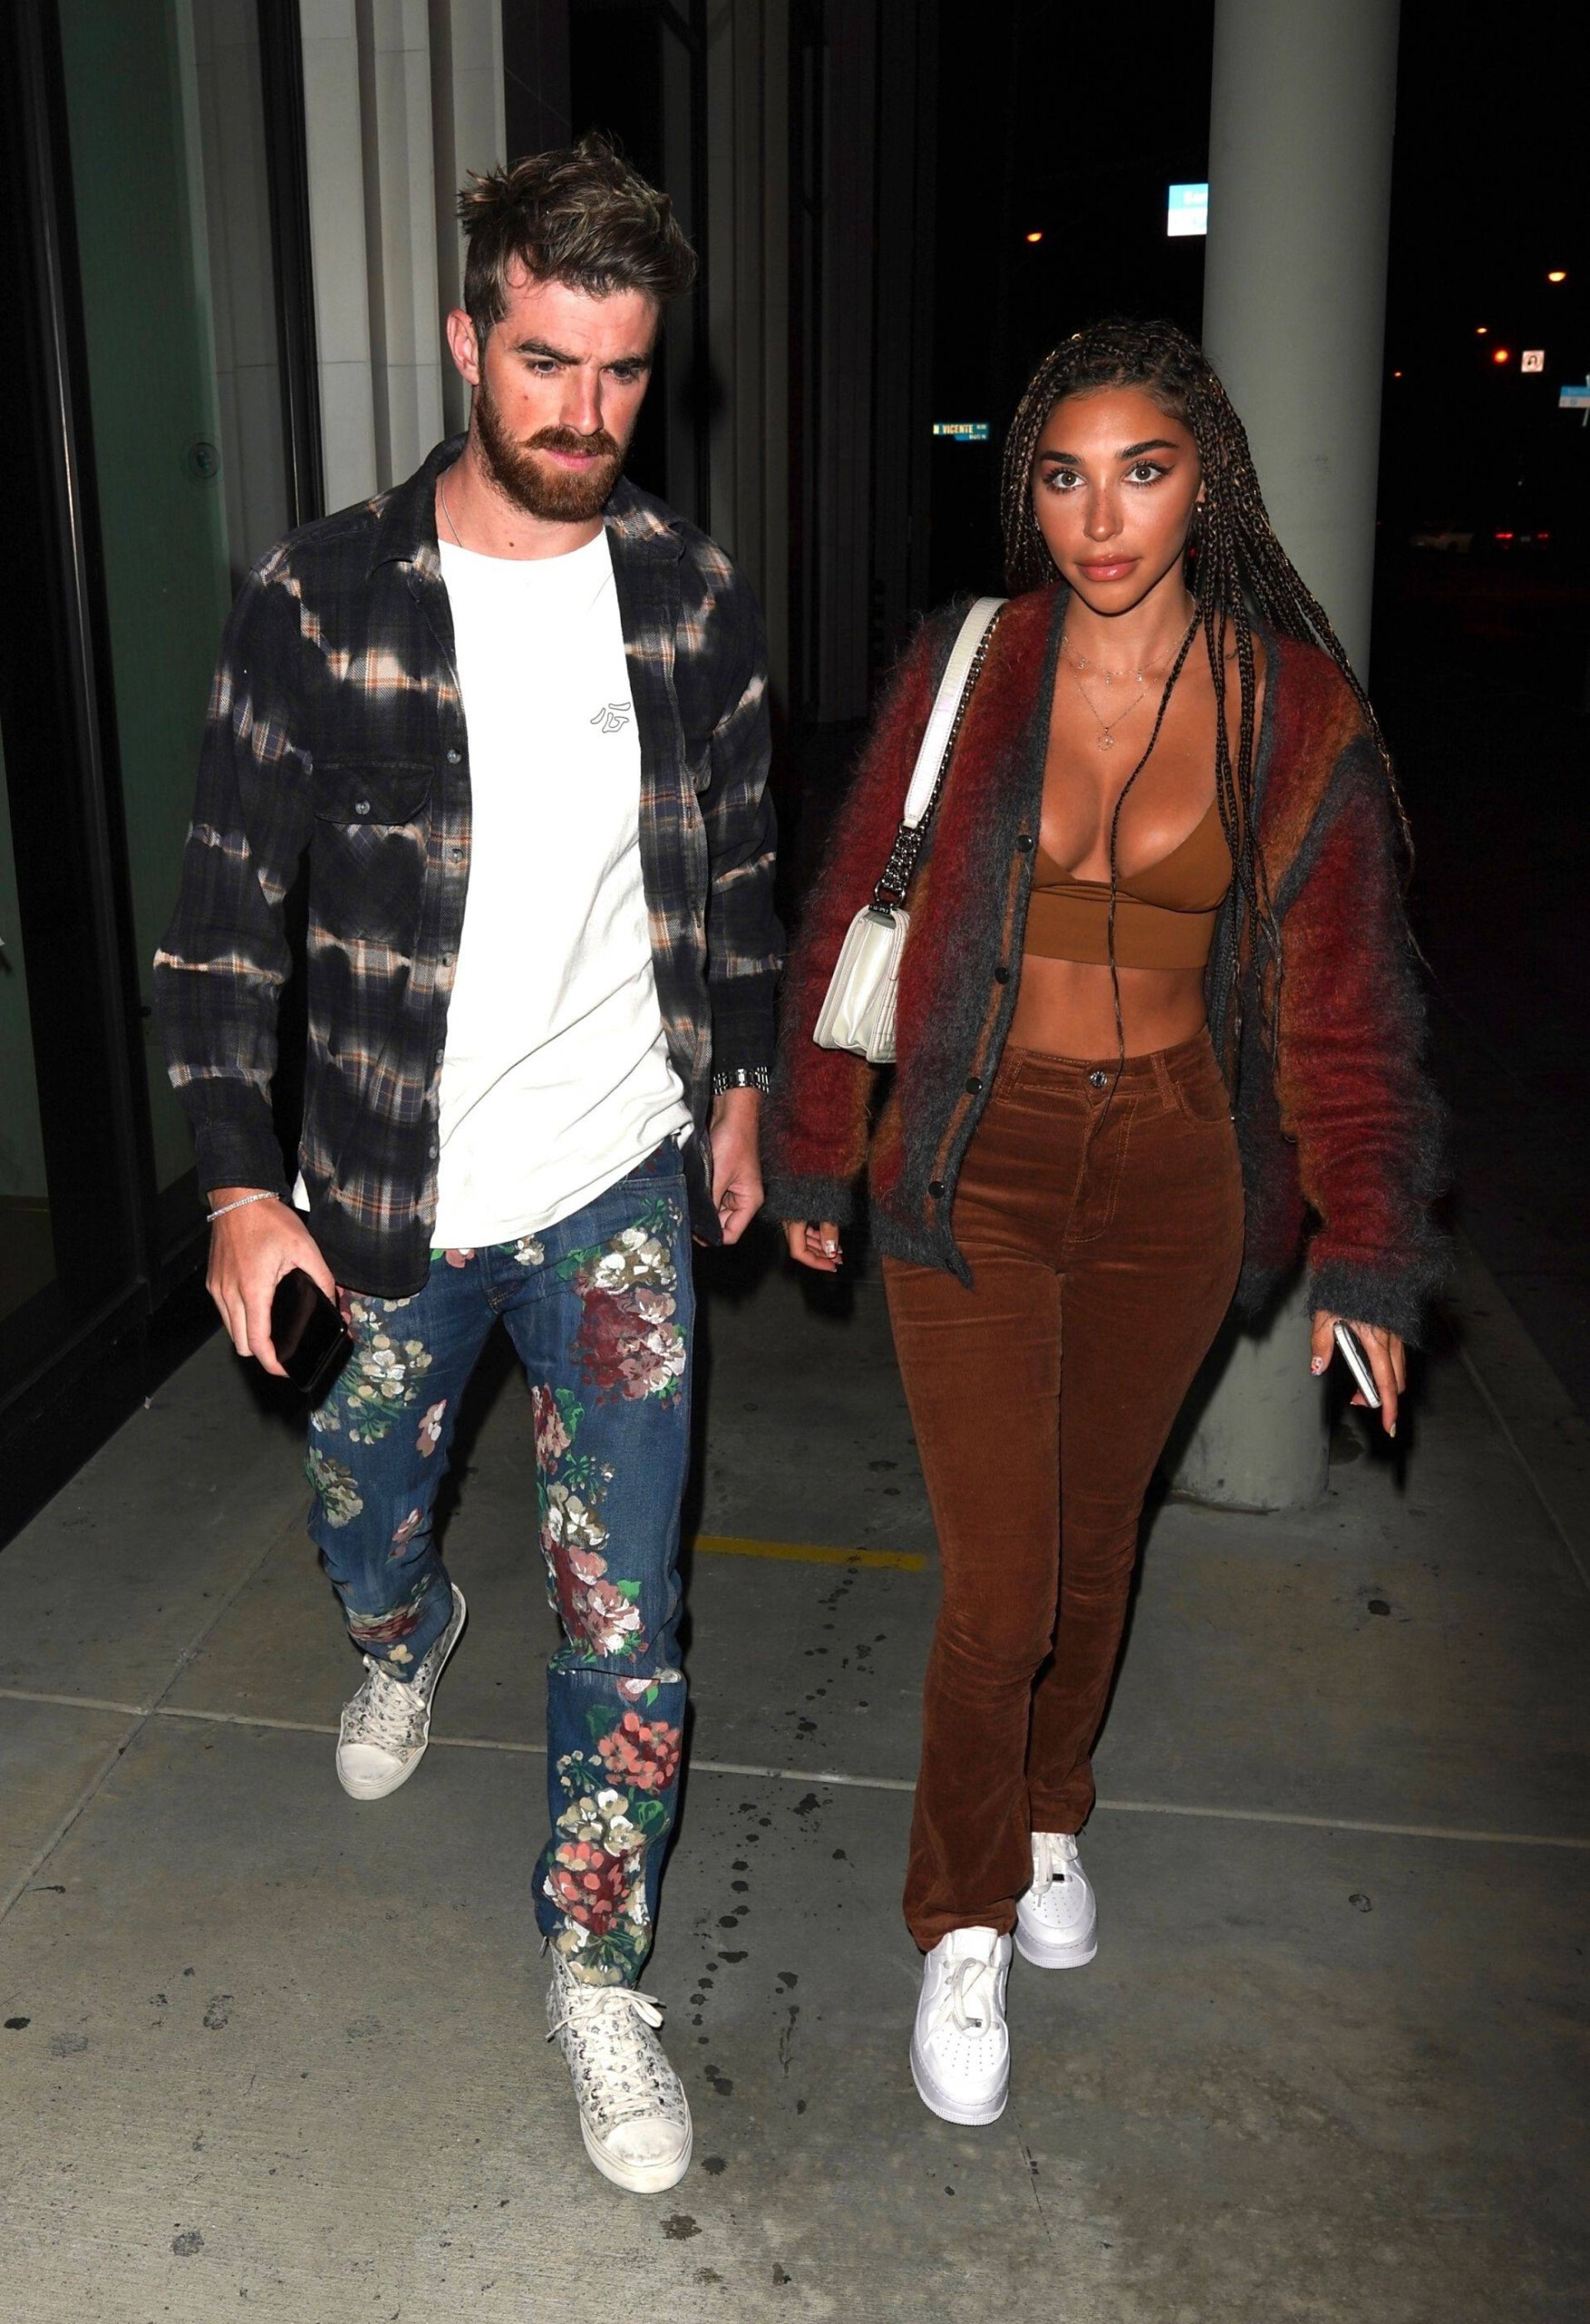 Chantel Jeffries – Sexy Boobs In Big Cleavage At Catch Restaurant In West Hollywood 0012